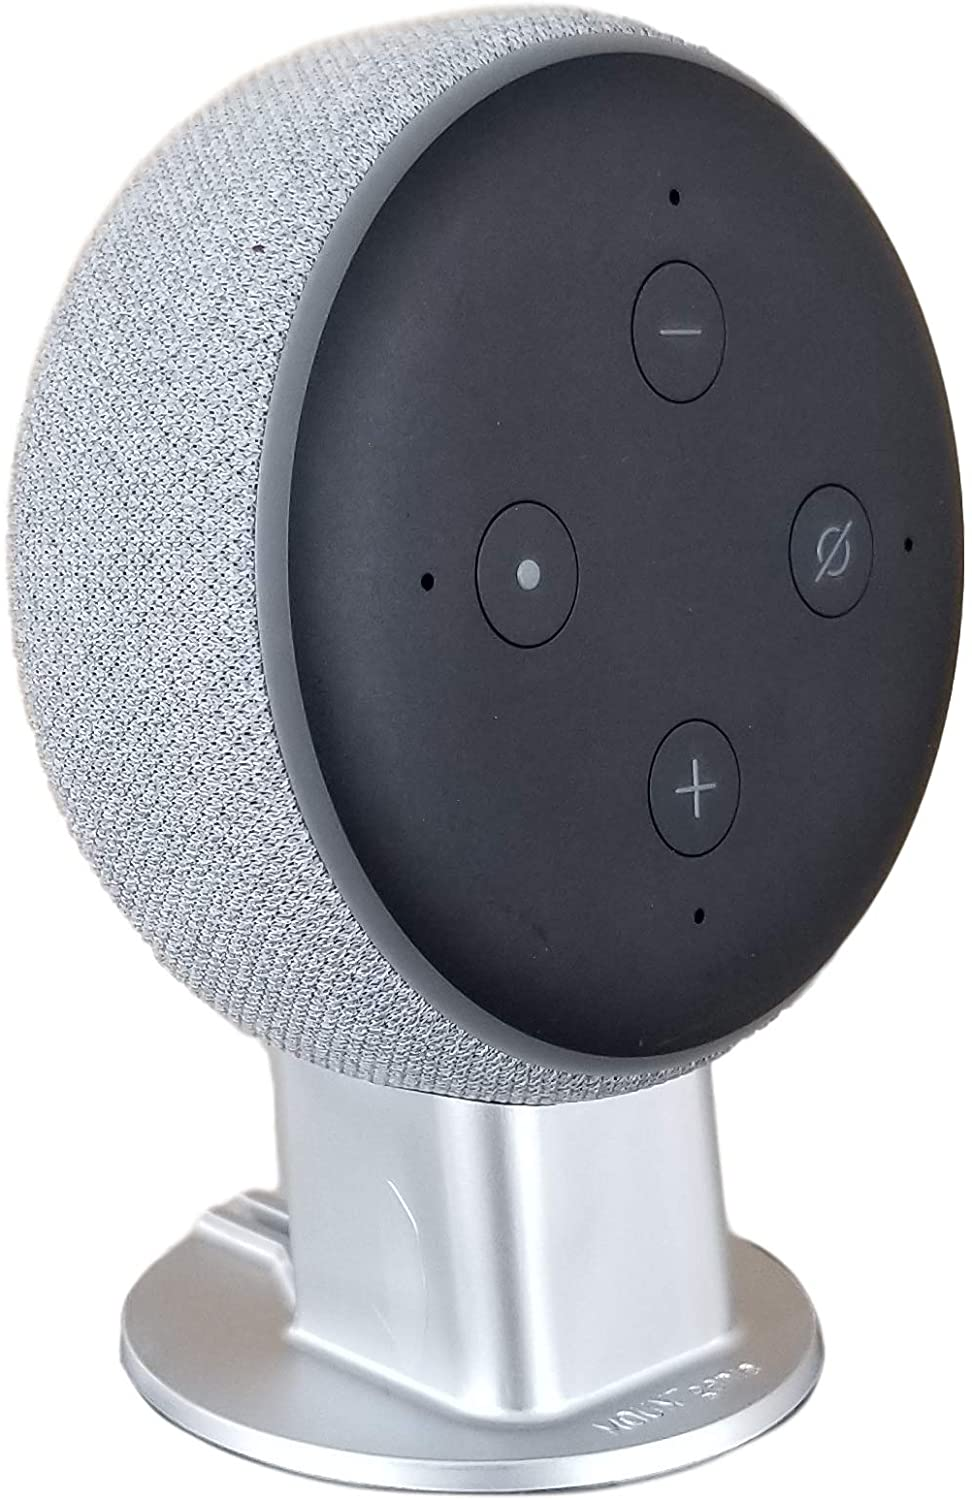 Mount Genie Dot 3rd Generation Pedestal Table Holder | Improves Sound Visibility and Appearance | Designed in USA (Silver)